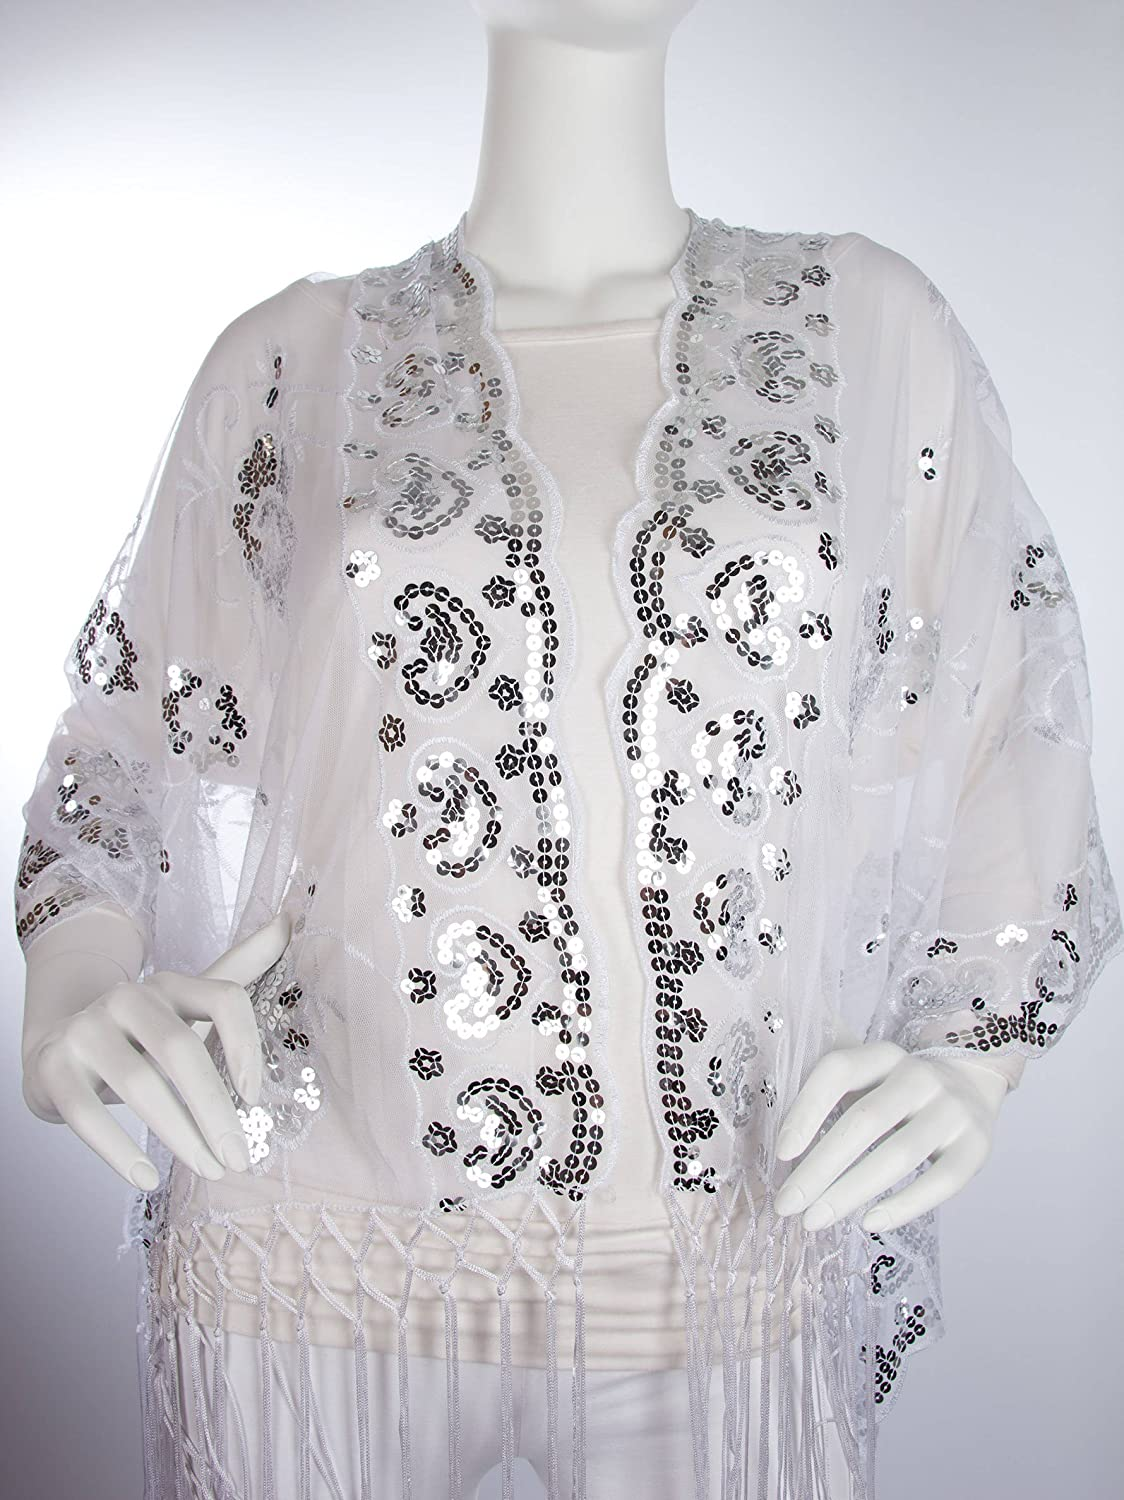 Vintage Inspired Wedding Accessories Madison Shawl Long Fringe Sequin Evening Wrap $16.95 AT vintagedancer.com